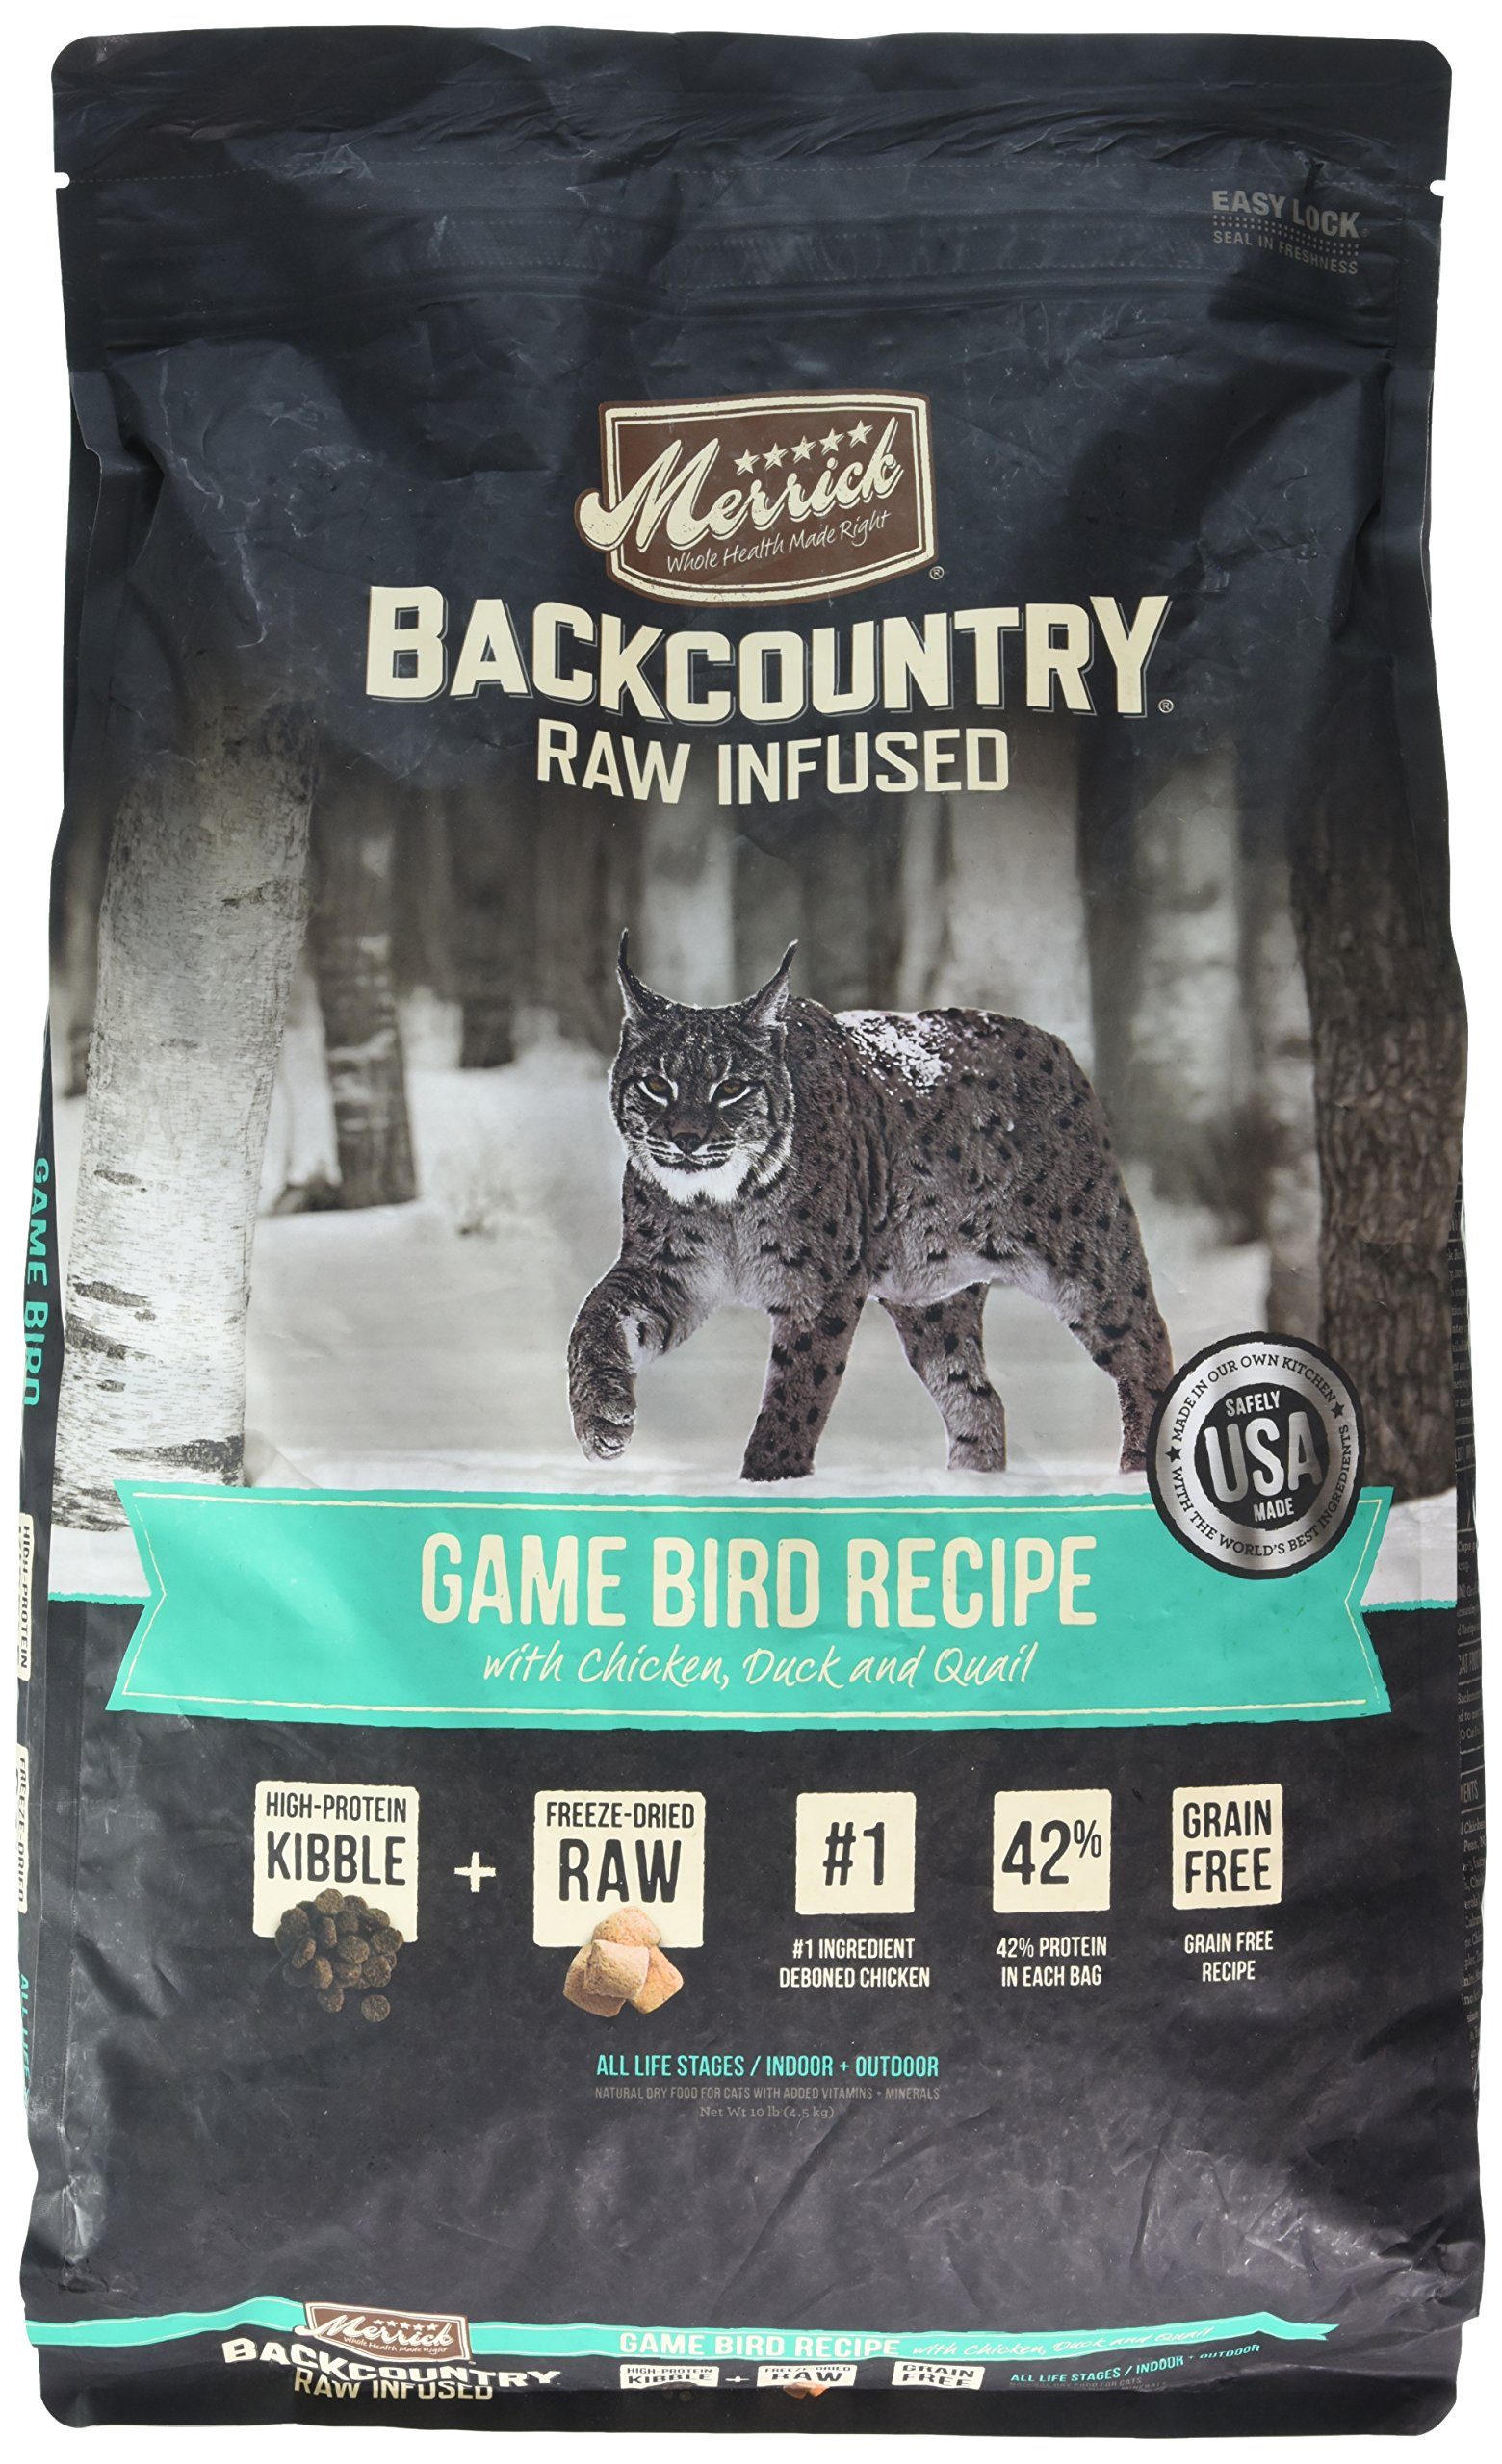 Merrick backcountry grain free raw infused game bird recipe dry cat merrick backcountry grain free raw infused game bird recipe dry cat food 10 lb forumfinder Choice Image